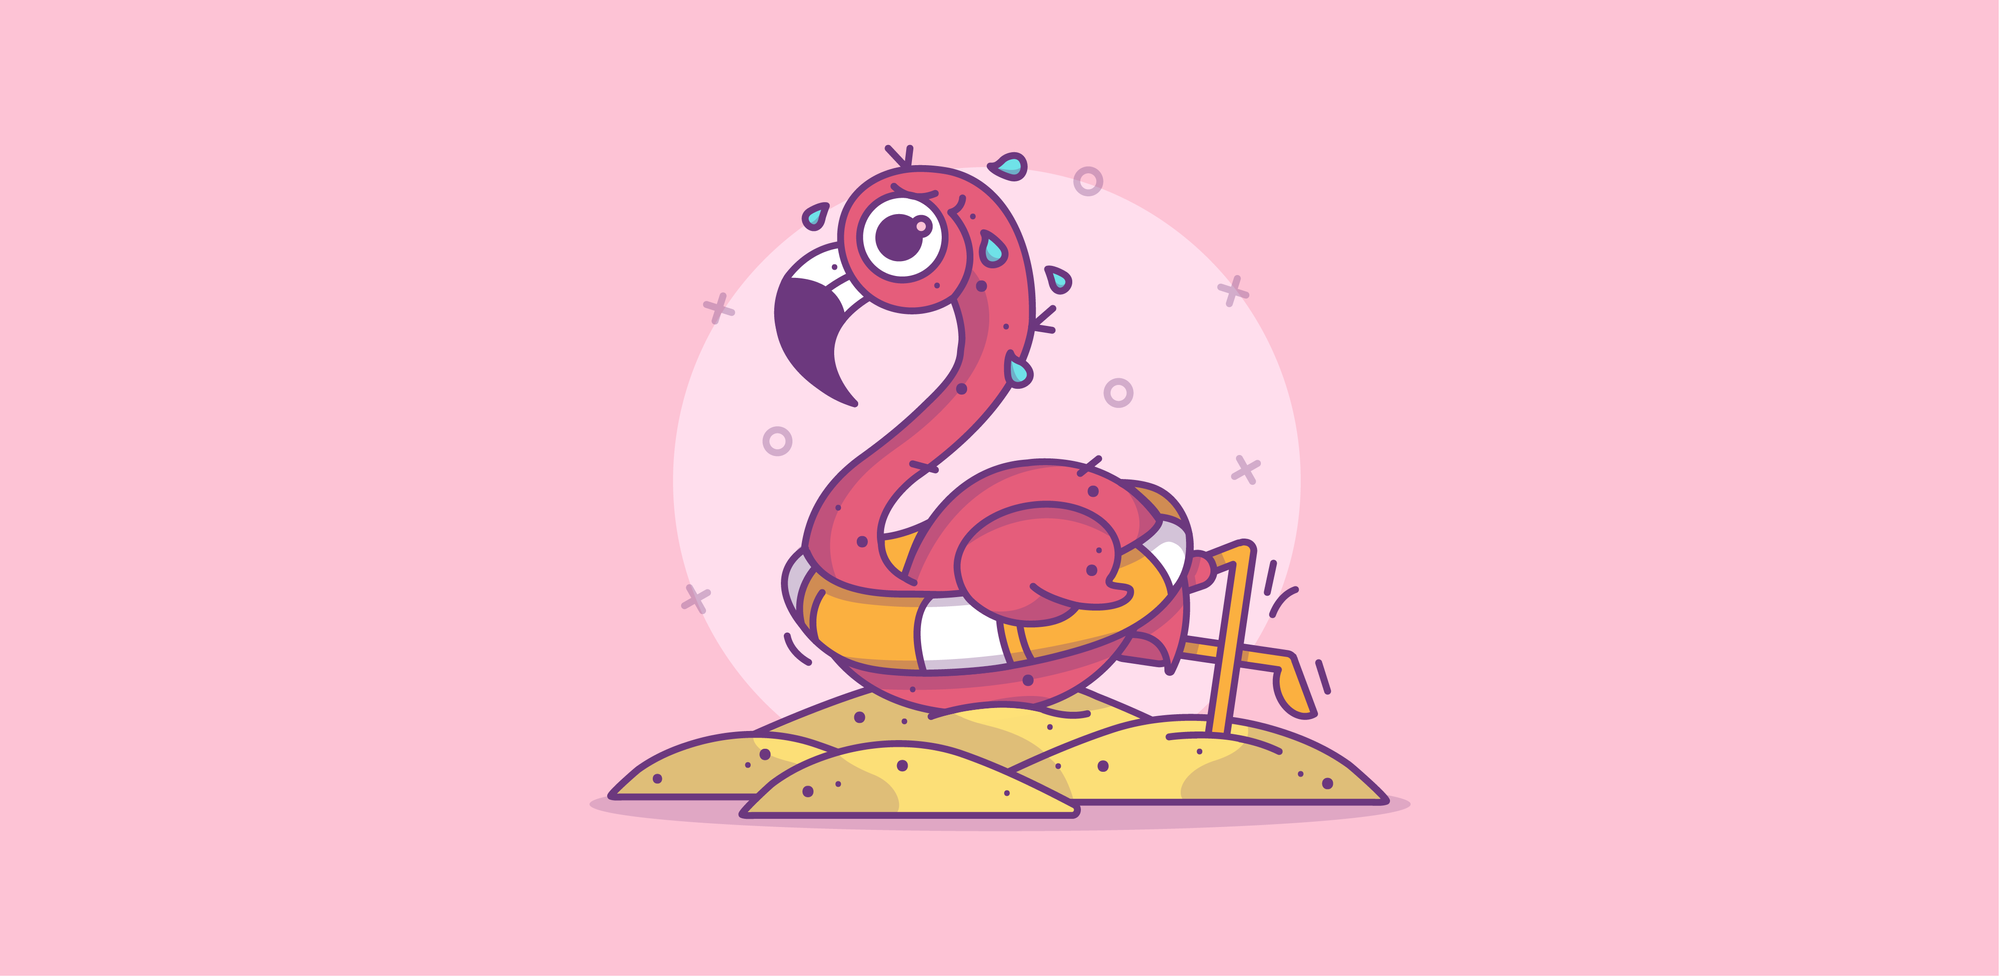 Benny-Ou_Flamingo-trying-to-swim_Out-of-its-environment_Inner-article-04